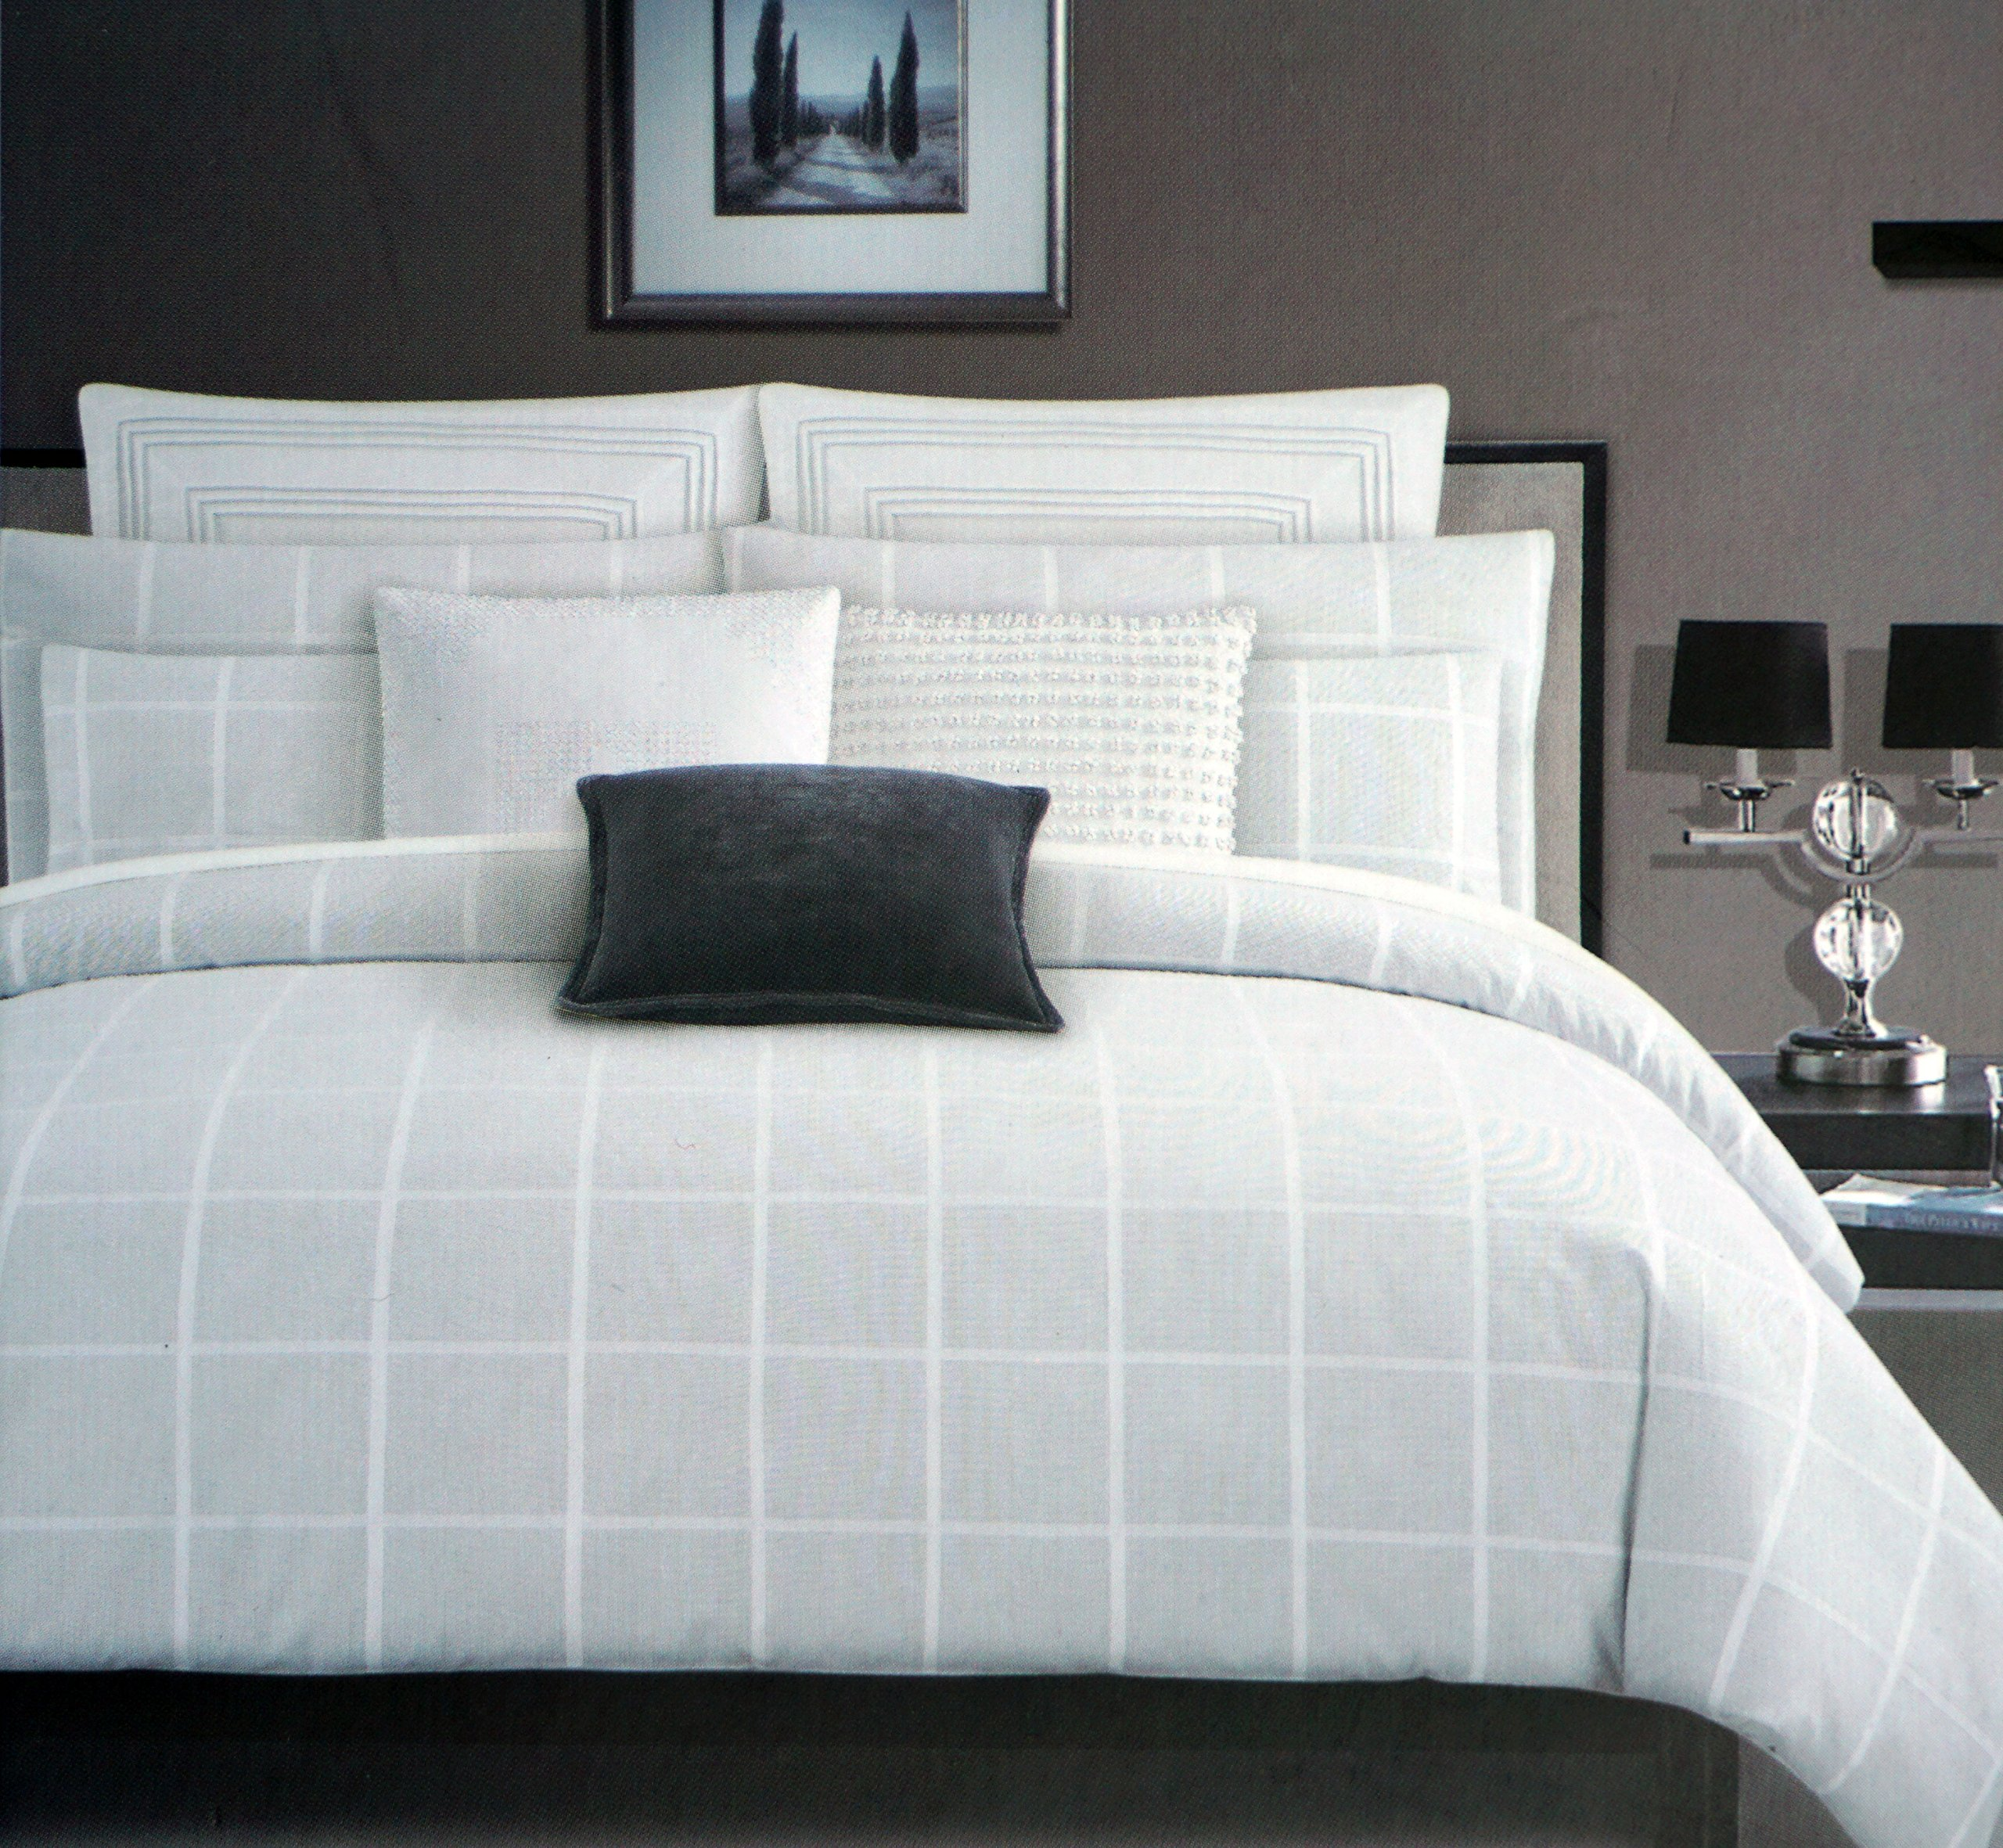 Tahari Bedding 3 Piece Full / Queen Duvet Cover Set Modern Geo Squares Textured Woven White Stripes Crosshatch Window Pane Plaid on a Background of White and Light Gray Thread Mesh